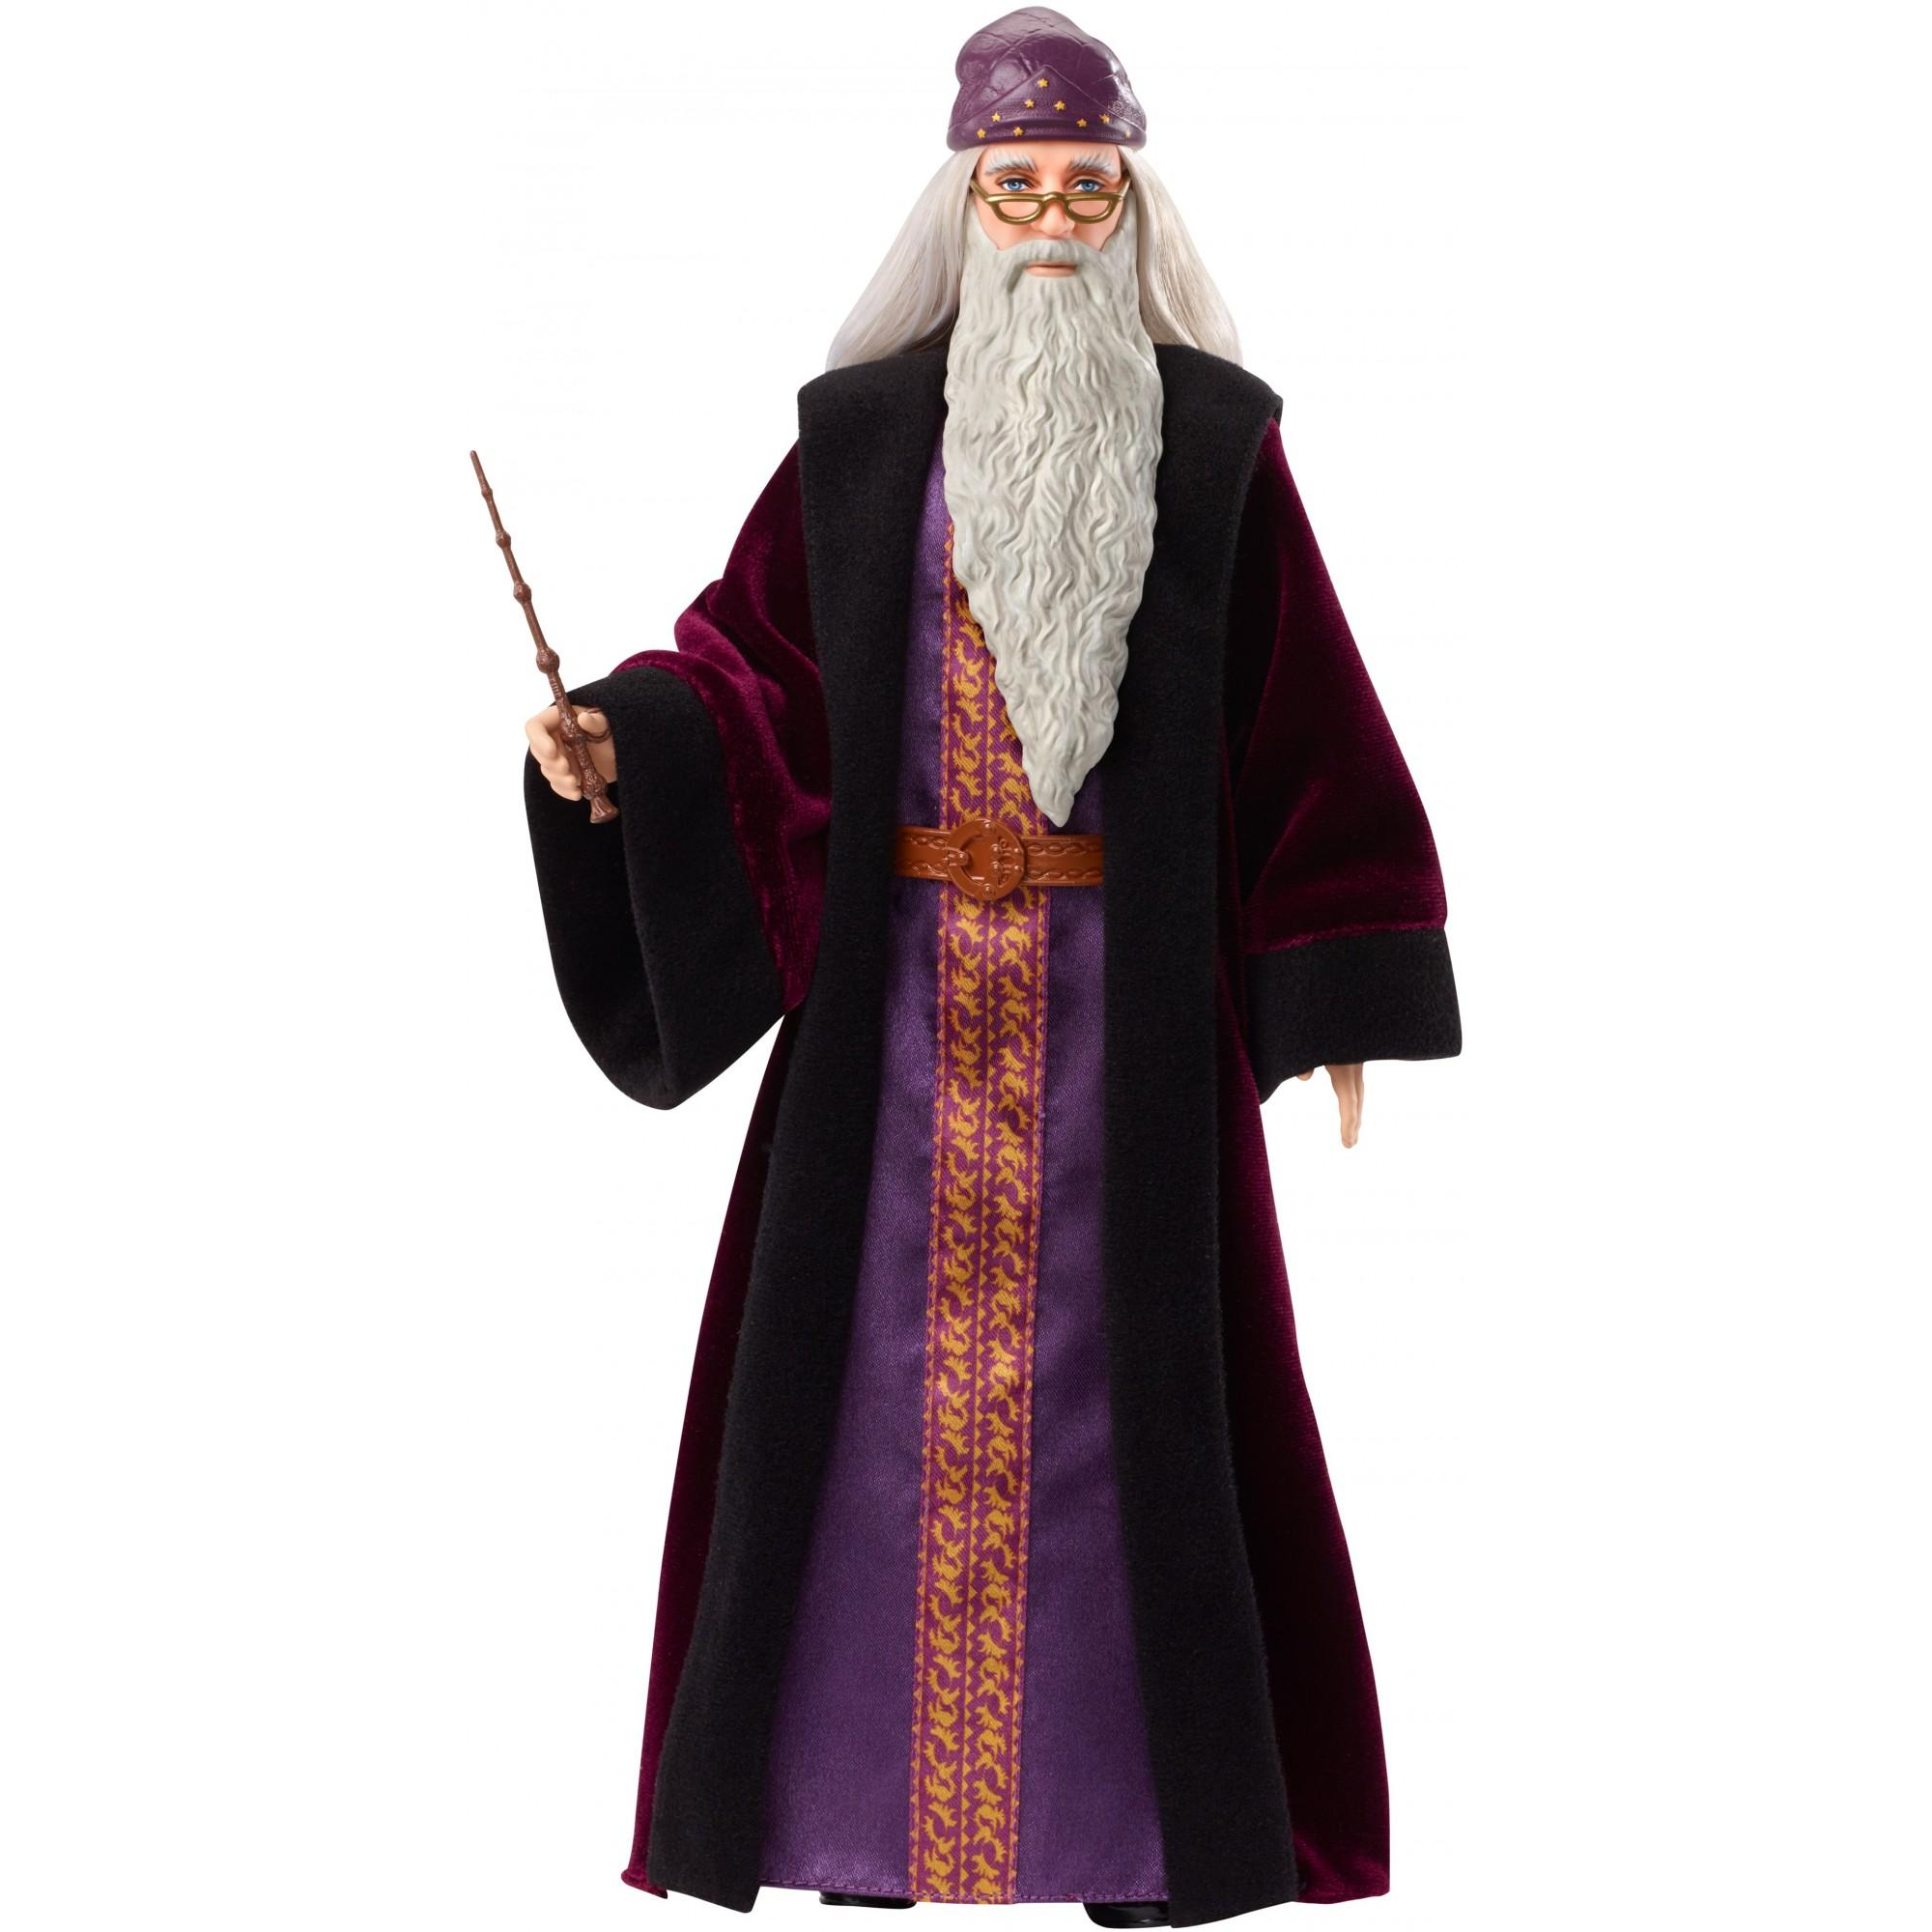 Albus Dumbledore Harry Potter Doll